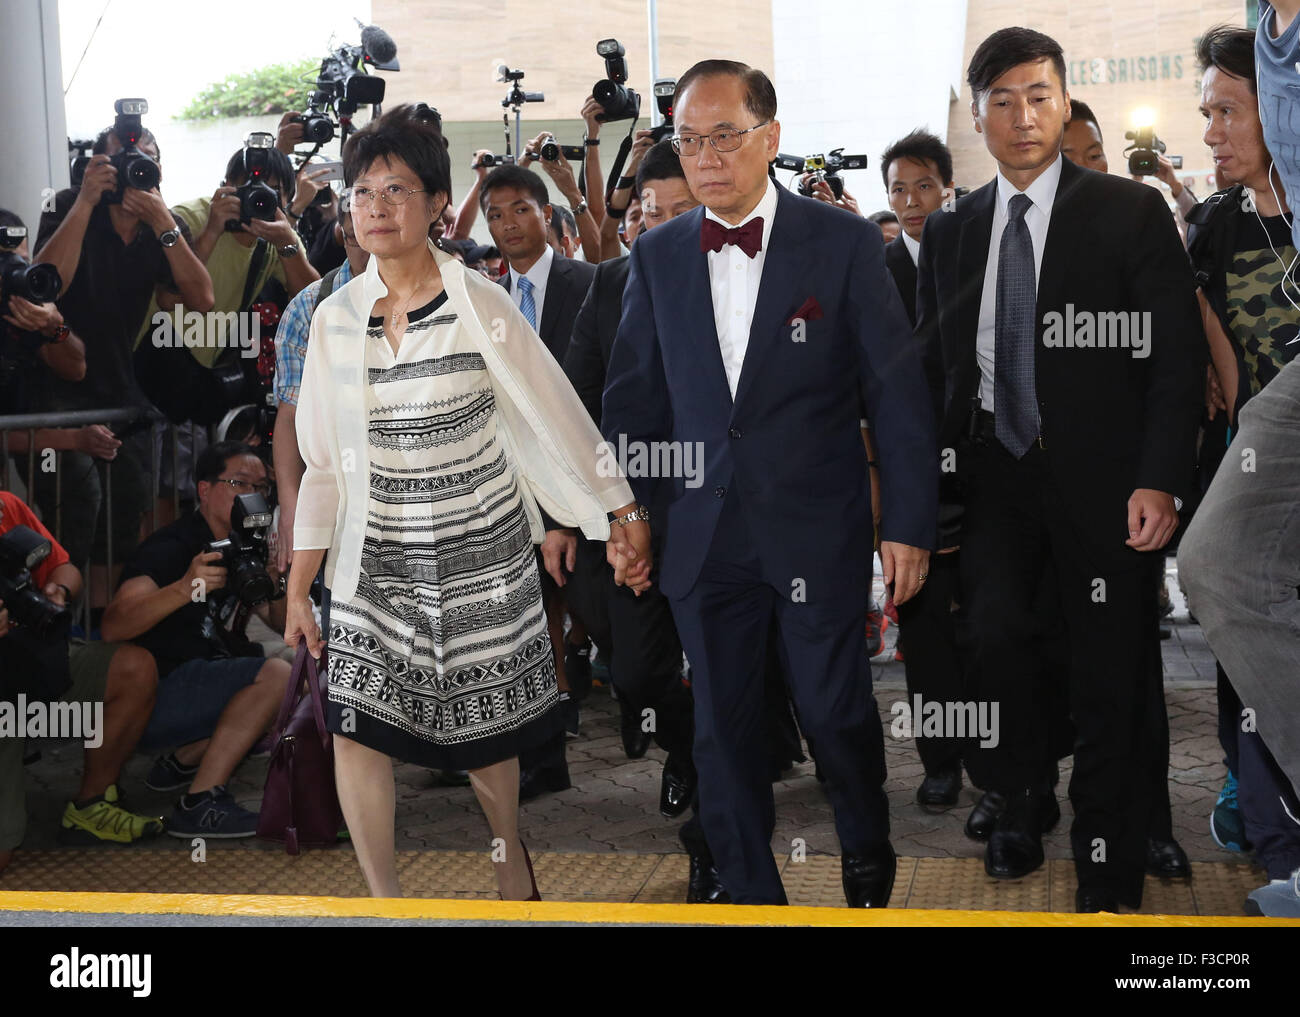 Hong Kong. 5th Oct, 2015. Donald Tsang Yam-kuen (2nd L, front), former chief executive of the Hong Kong Special - Stock Image